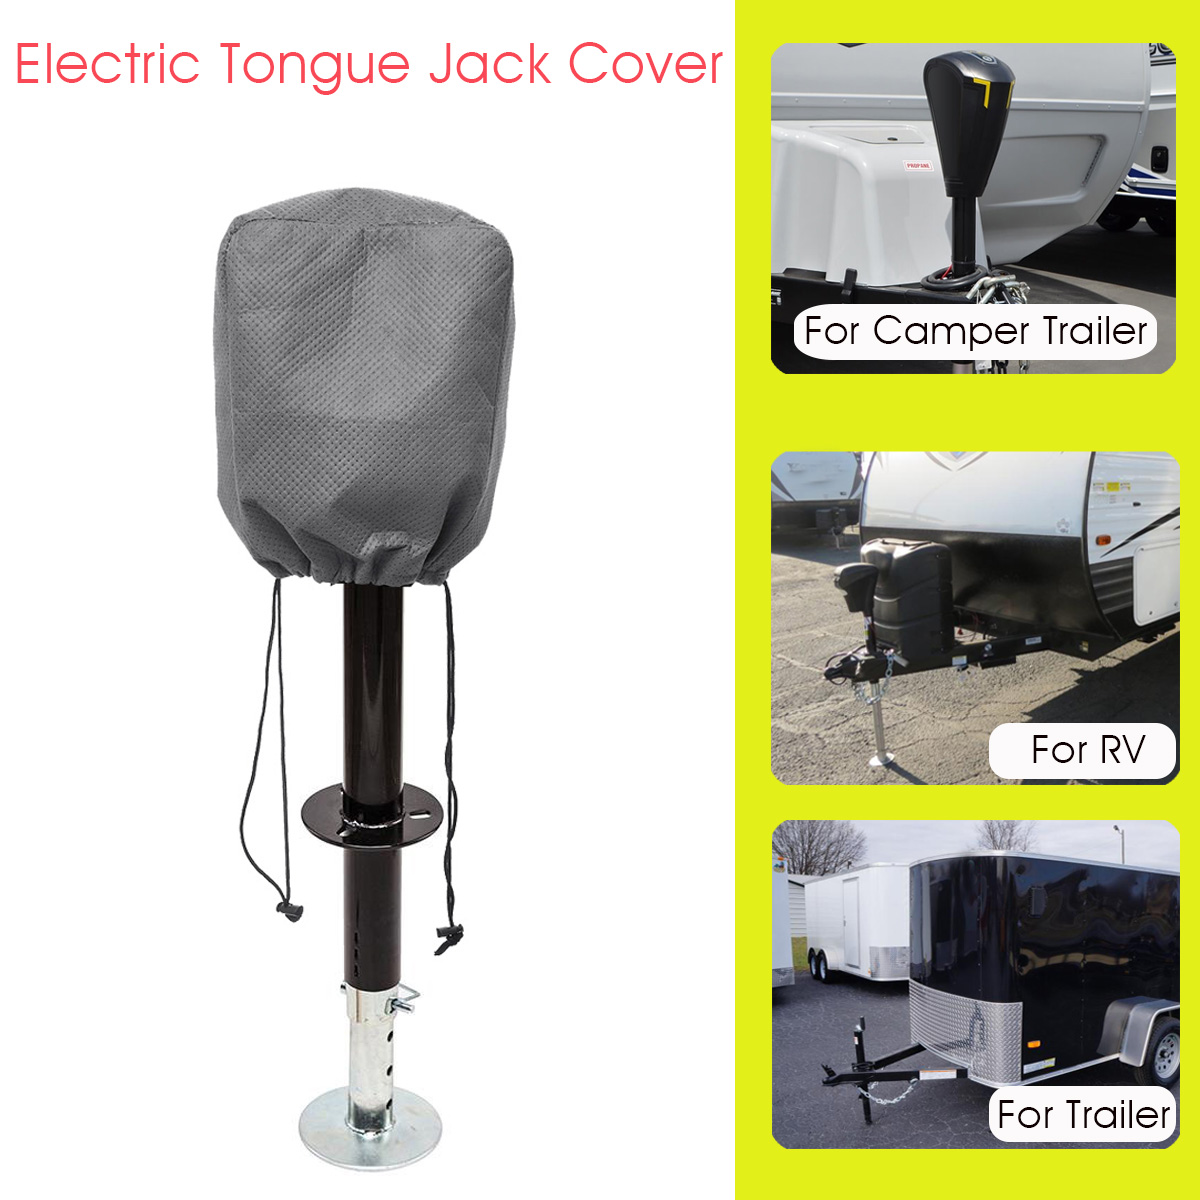 Protector Motorhome-Trailer Tongue-Jack-Cover Grey Travel Electric RV Waterproof For Camper